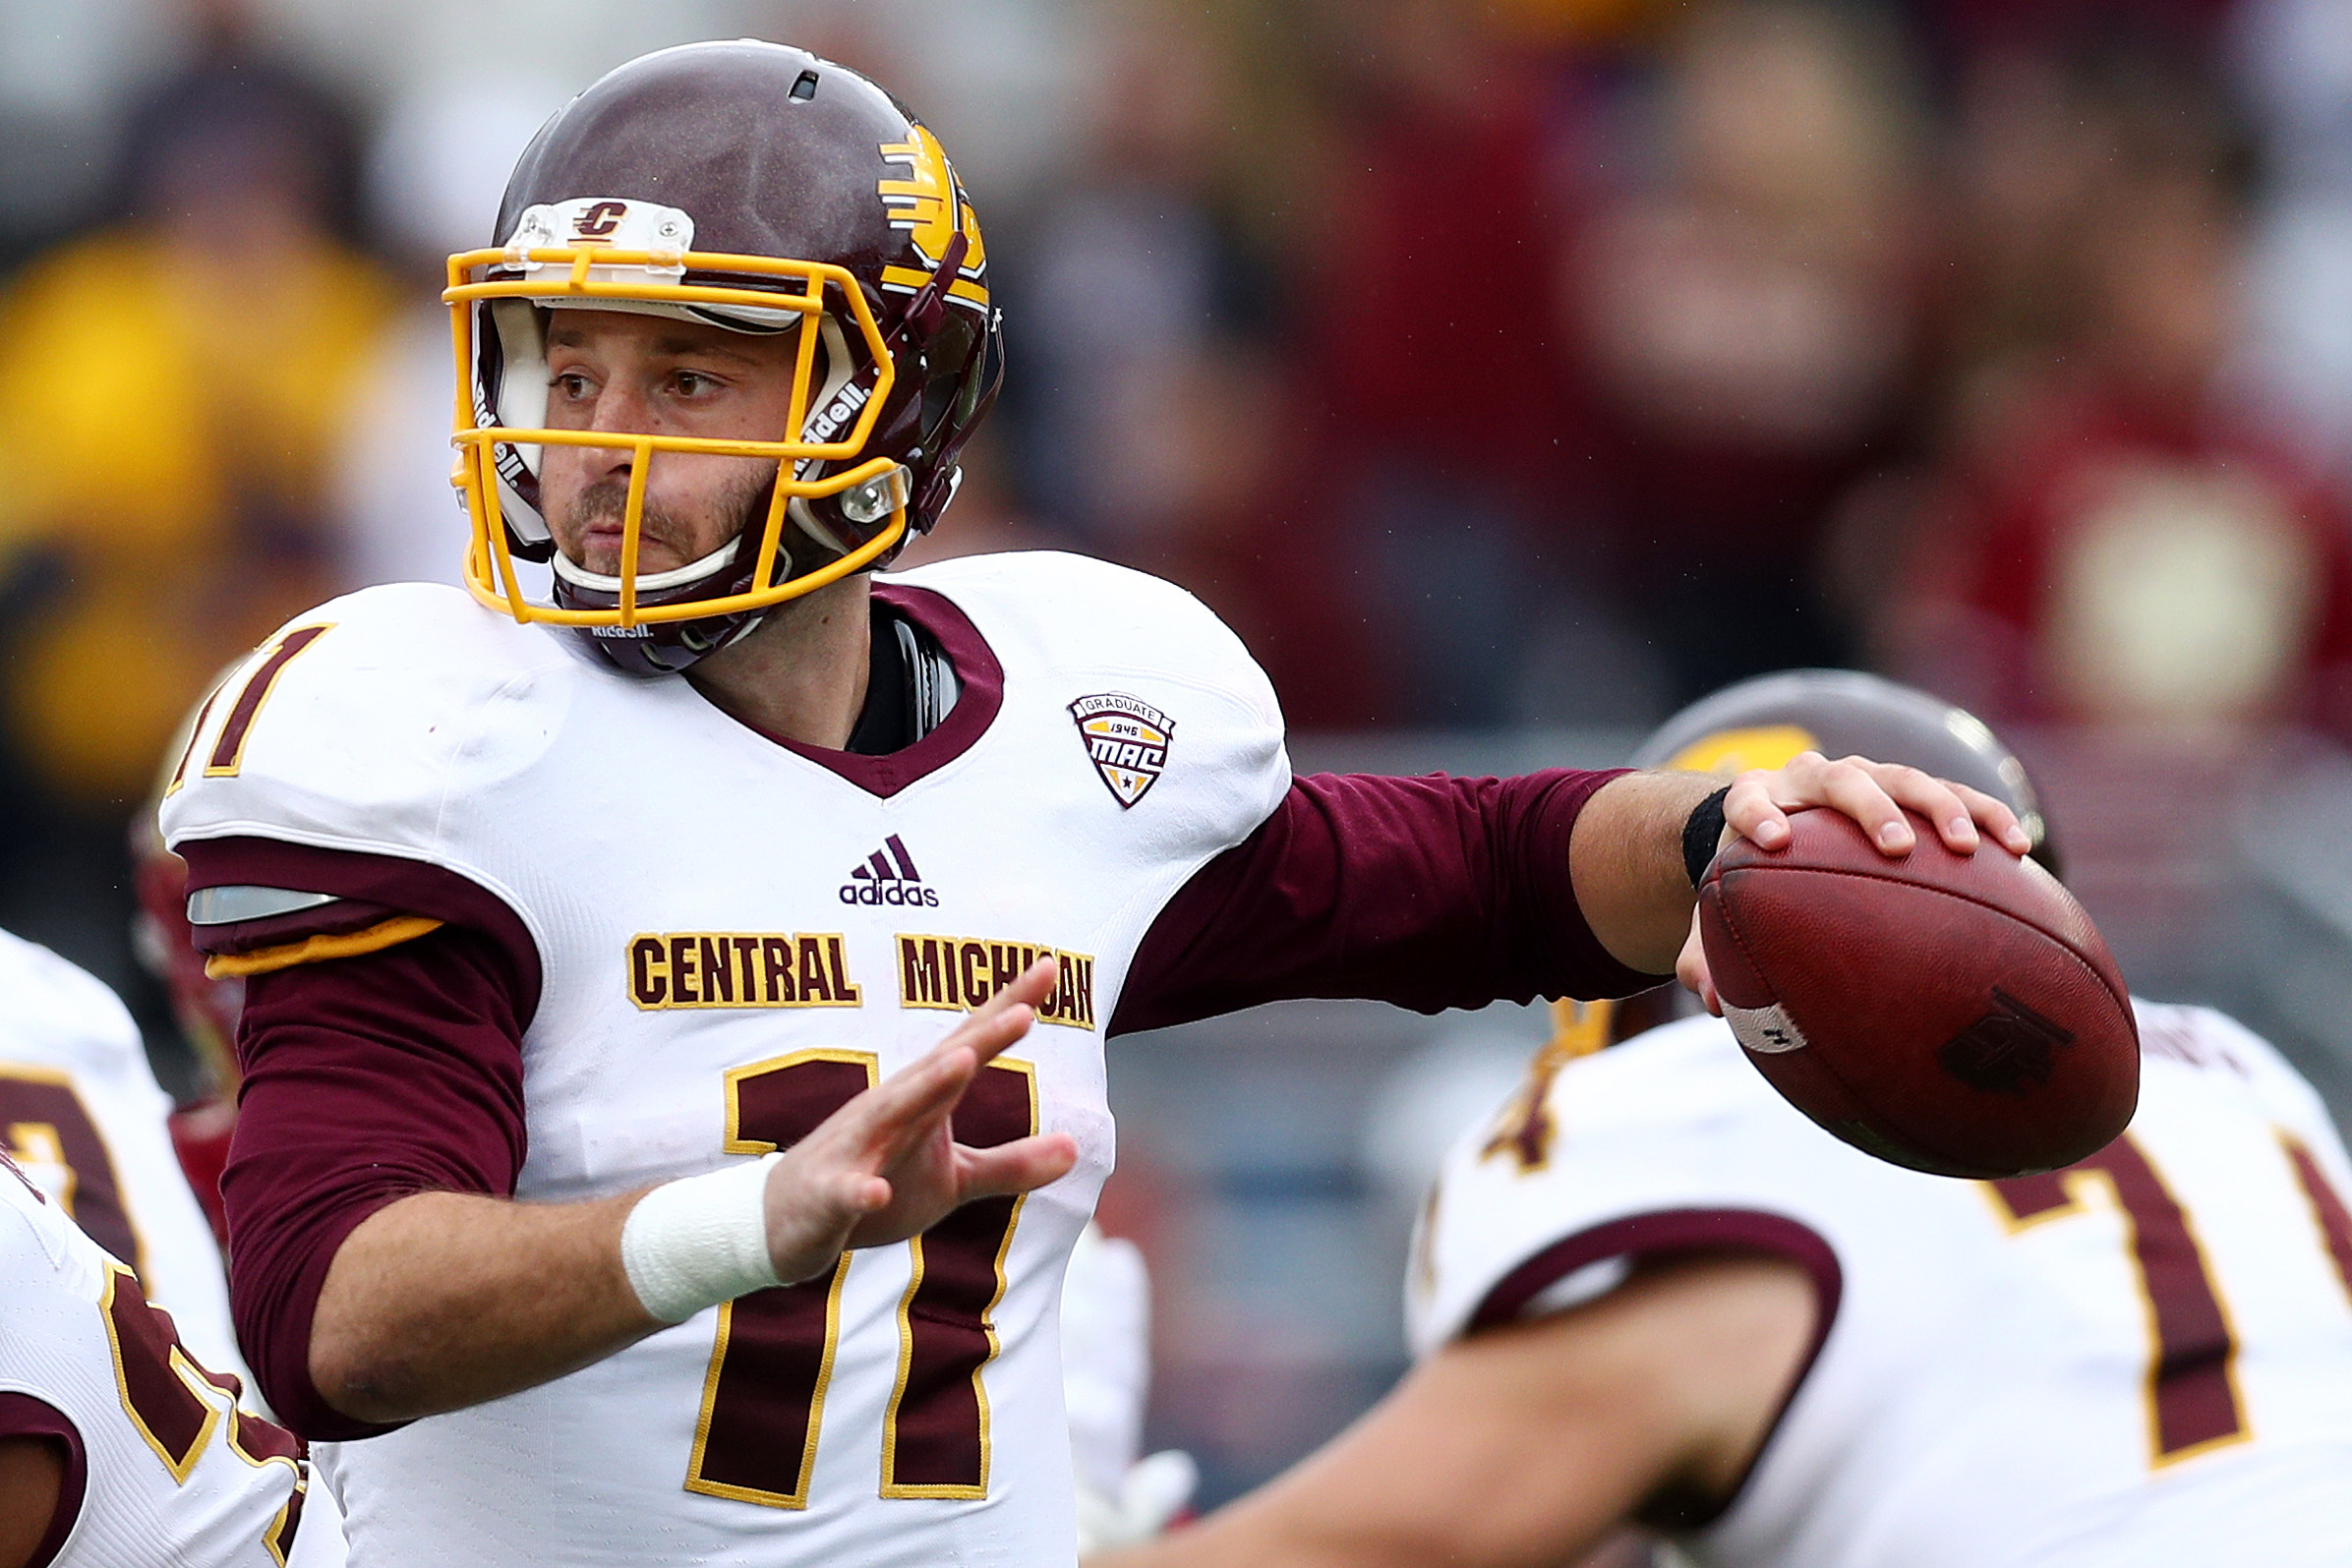 Central Michigan v Boston College